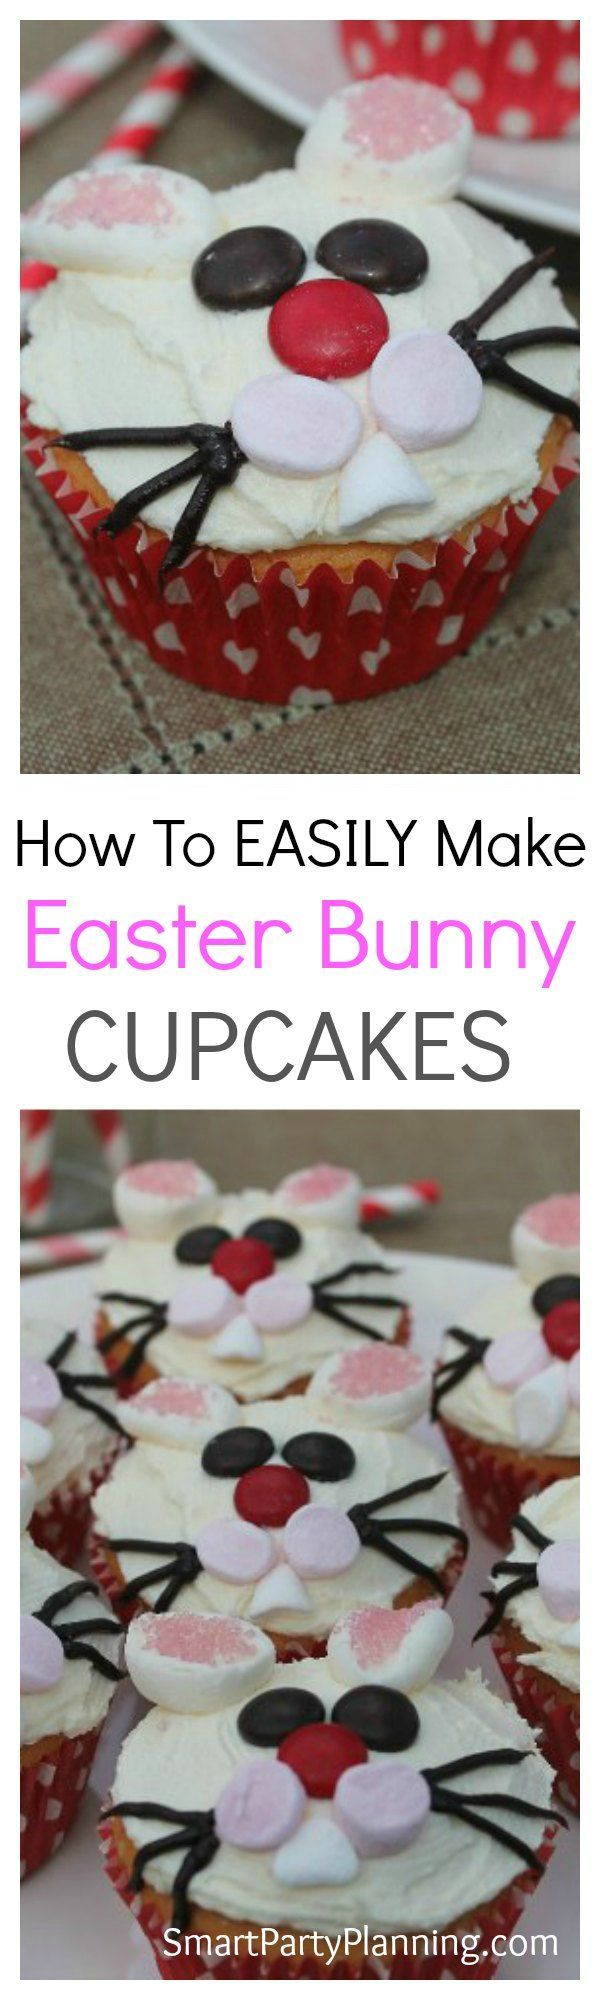 Easter bunny cupcakes are incredibly easy to make and they look fantastic. Follow this step by step tutorial and make these cheeky bunny cupcakes with the kids.  If you are looking for an easy dessert that the whole family will love, then this one will be super easy for you. #Easter #Cupcakes #Bunny #Kids